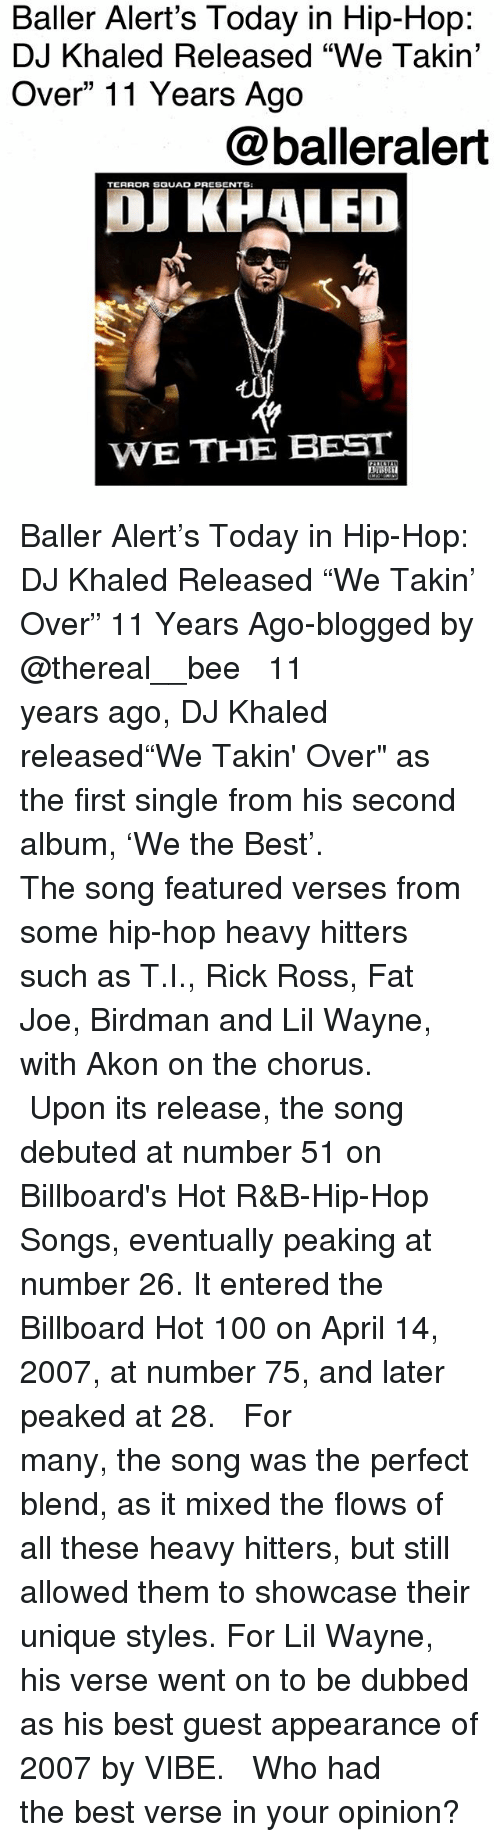 """Akon, Anaconda, and Baller Alert: Baller Alert's Today in Hip-Hop:  DJ Khaled Released """"We Takin'  Over"""" 11 Years Ago  @balleralert  TERROR SGUAD PRESENTS  OJ KHALED  WE THE BEST Baller Alert's Today in Hip-Hop: DJ Khaled Released """"We Takin' Over"""" 11 Years Ago-blogged by @thereal__bee ⠀⠀⠀⠀⠀⠀⠀⠀⠀ ⠀⠀ 11 years ago, DJ Khaled released""""We Takin' Over"""" as the first single from his second album, 'We the Best'. ⠀⠀⠀⠀⠀⠀⠀⠀⠀ ⠀⠀ The song featured verses from some hip-hop heavy hitters such as T.I., Rick Ross, Fat Joe, Birdman and Lil Wayne, with Akon on the chorus. ⠀⠀⠀⠀⠀⠀⠀⠀⠀ ⠀⠀ Upon its release, the song debuted at number 51 on Billboard's Hot R&B-Hip-Hop Songs, eventually peaking at number 26. It entered the Billboard Hot 100 on April 14, 2007, at number 75, and later peaked at 28. ⠀⠀⠀⠀⠀⠀⠀⠀⠀ ⠀⠀ For many, the song was the perfect blend, as it mixed the flows of all these heavy hitters, but still allowed them to showcase their unique styles. For Lil Wayne, his verse went on to be dubbed as his best guest appearance of 2007 by VIBE. ⠀⠀⠀⠀⠀⠀⠀⠀⠀ ⠀⠀ Who had the best verse in your opinion?"""